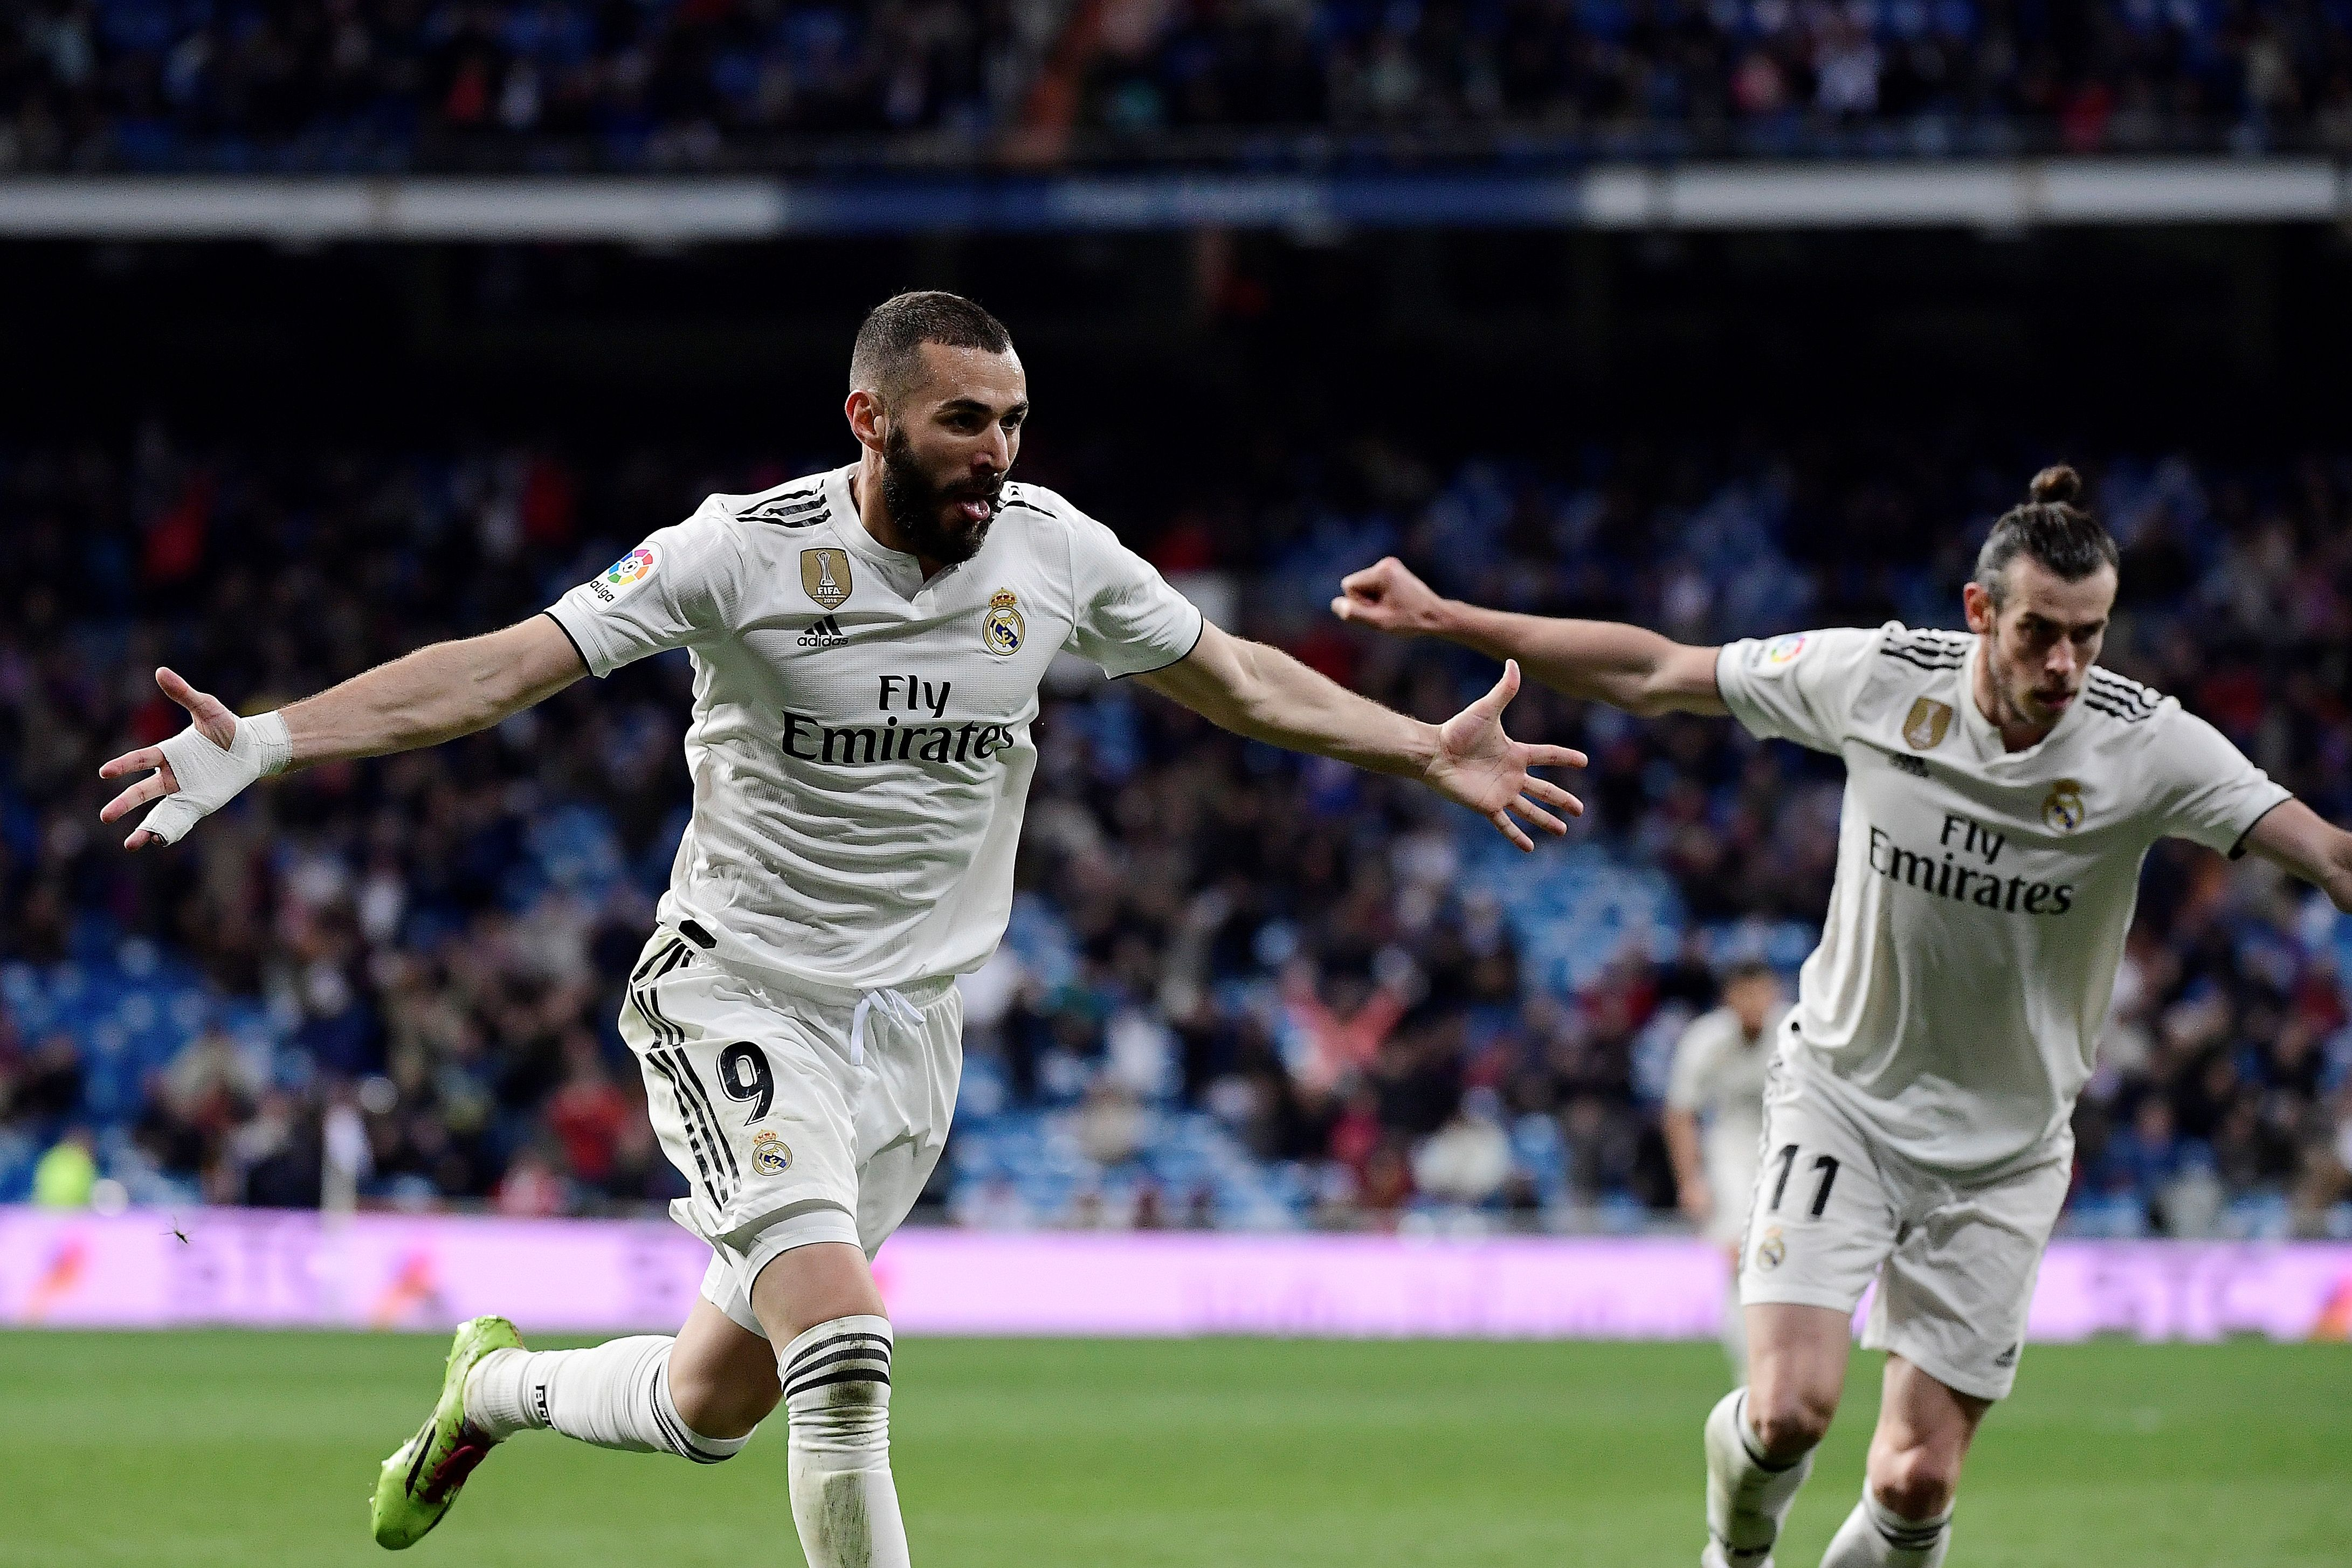 Bale and Benzema have been crucial to Real Madrid's success in the last decade (Photo by JAVIER SORIANO/AFP via Getty Images)